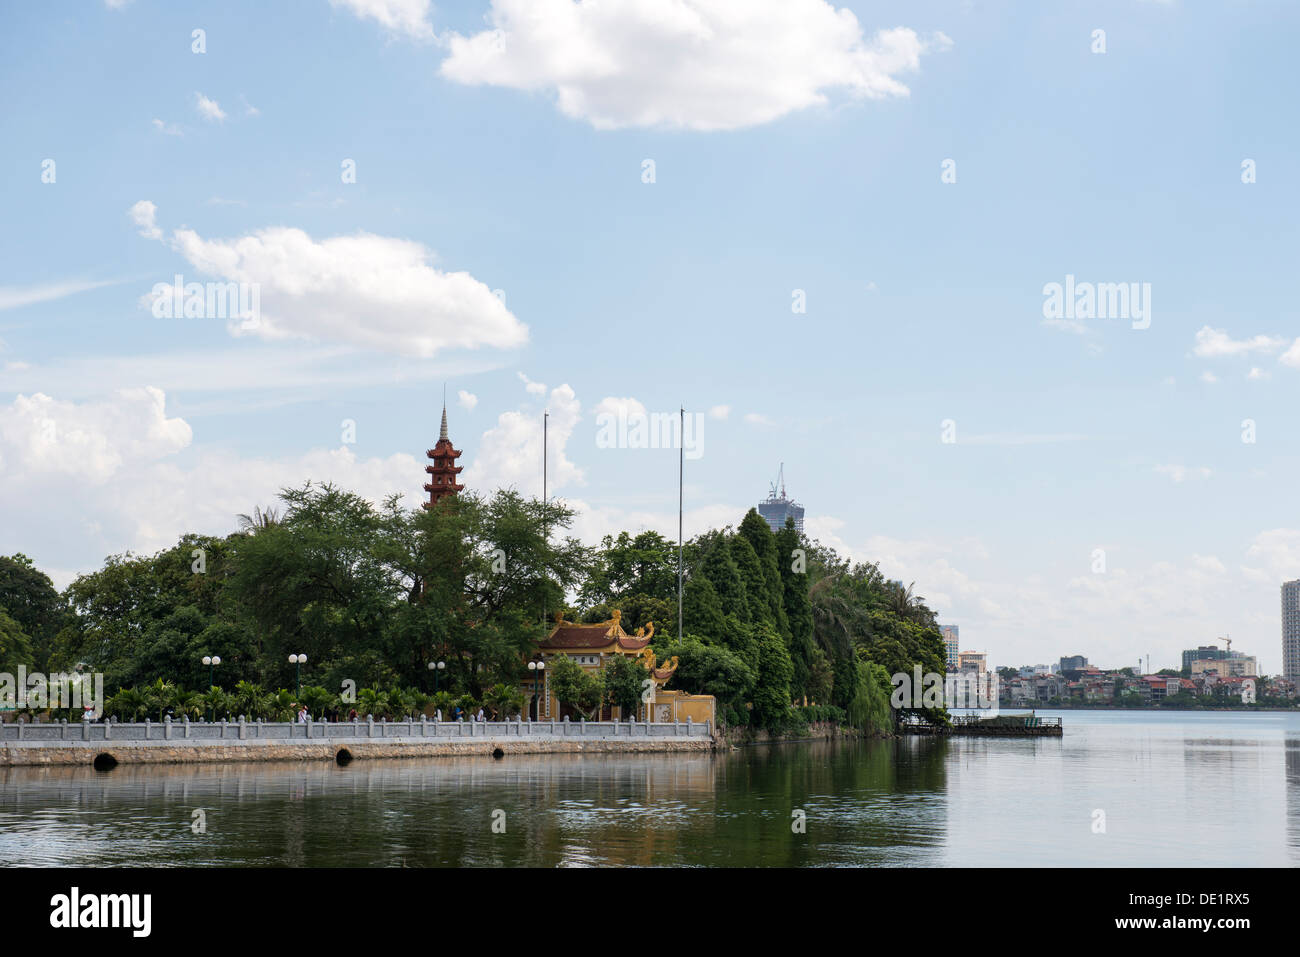 Chùa Trấn Quốc Pagoda view from West lake in Hanoi, Vietnam - Stock Image